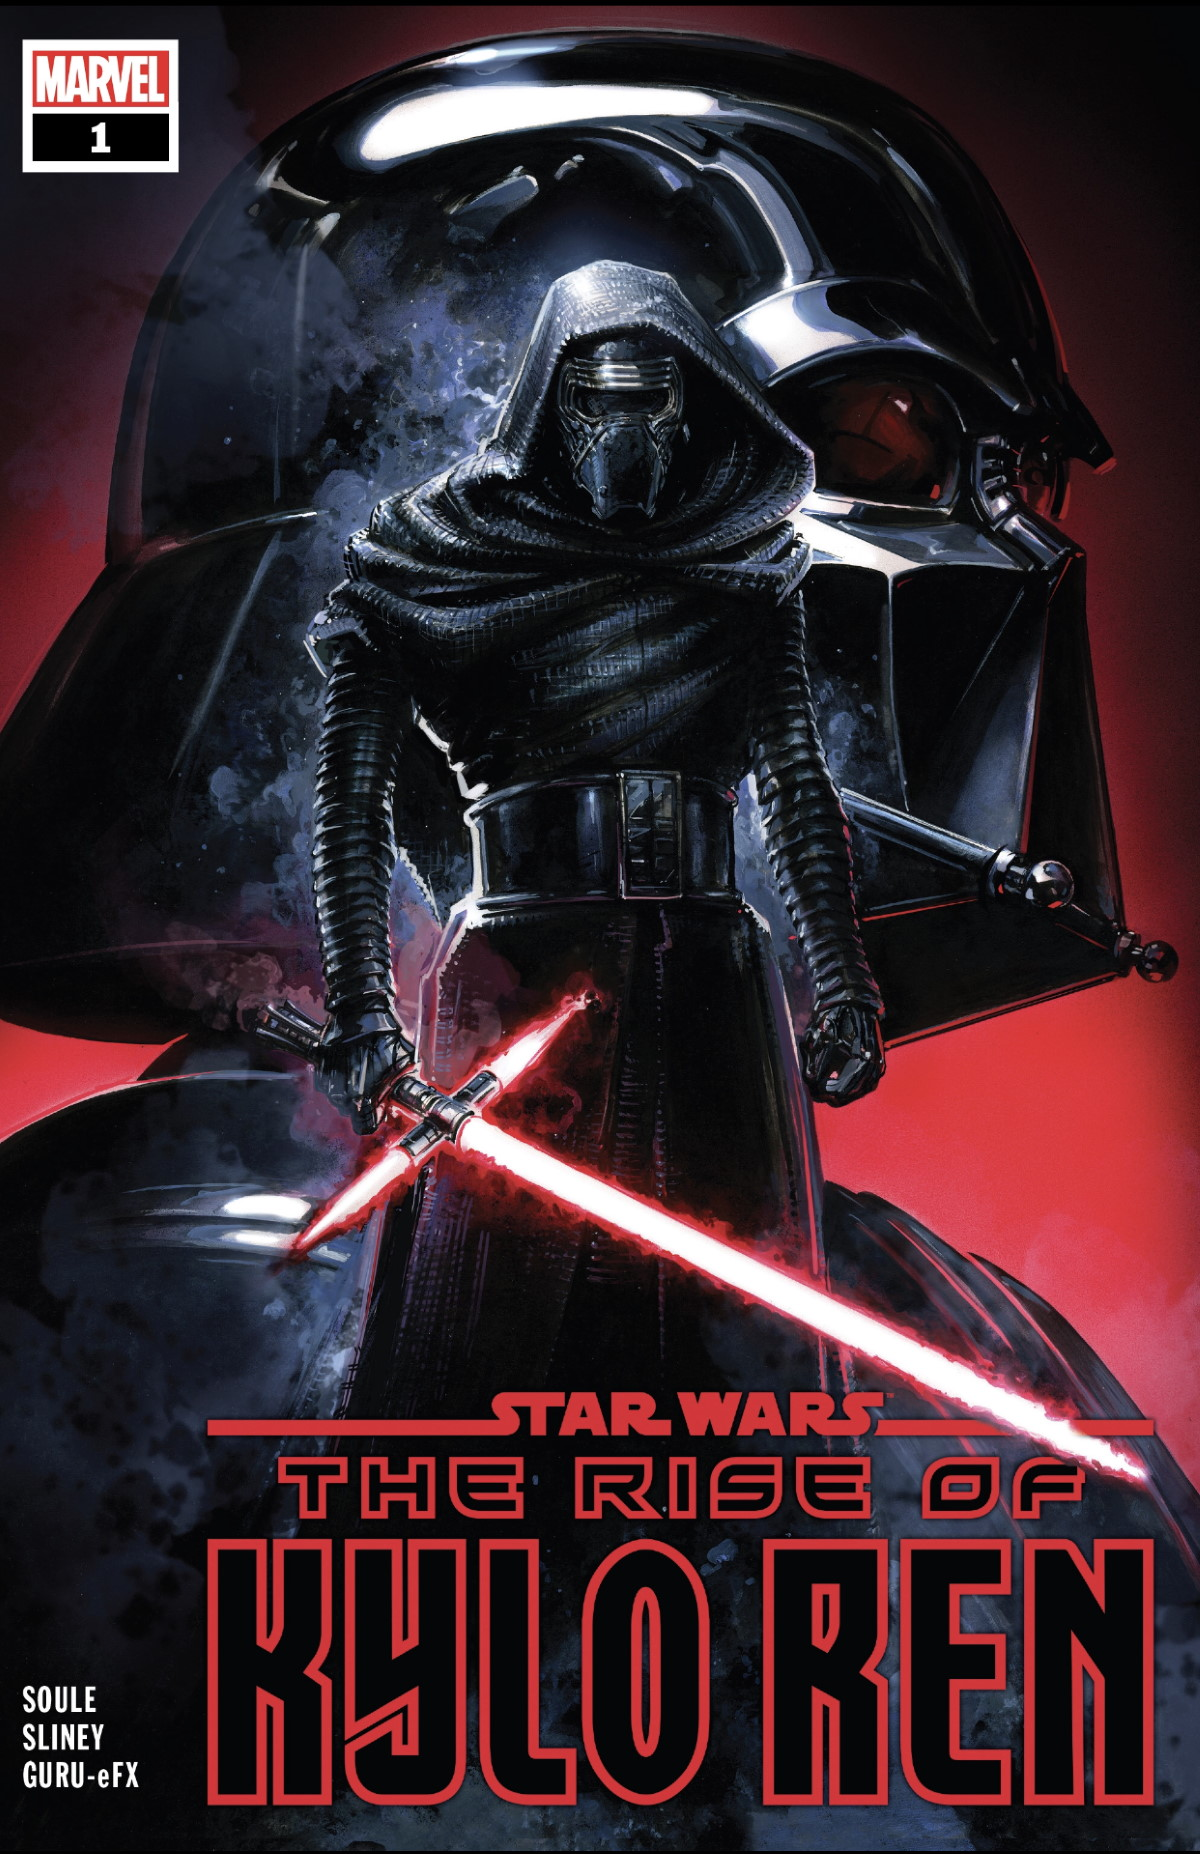 The Rise of Kylo Ren #1 Review - Cover - Star Wars - Charles Soule